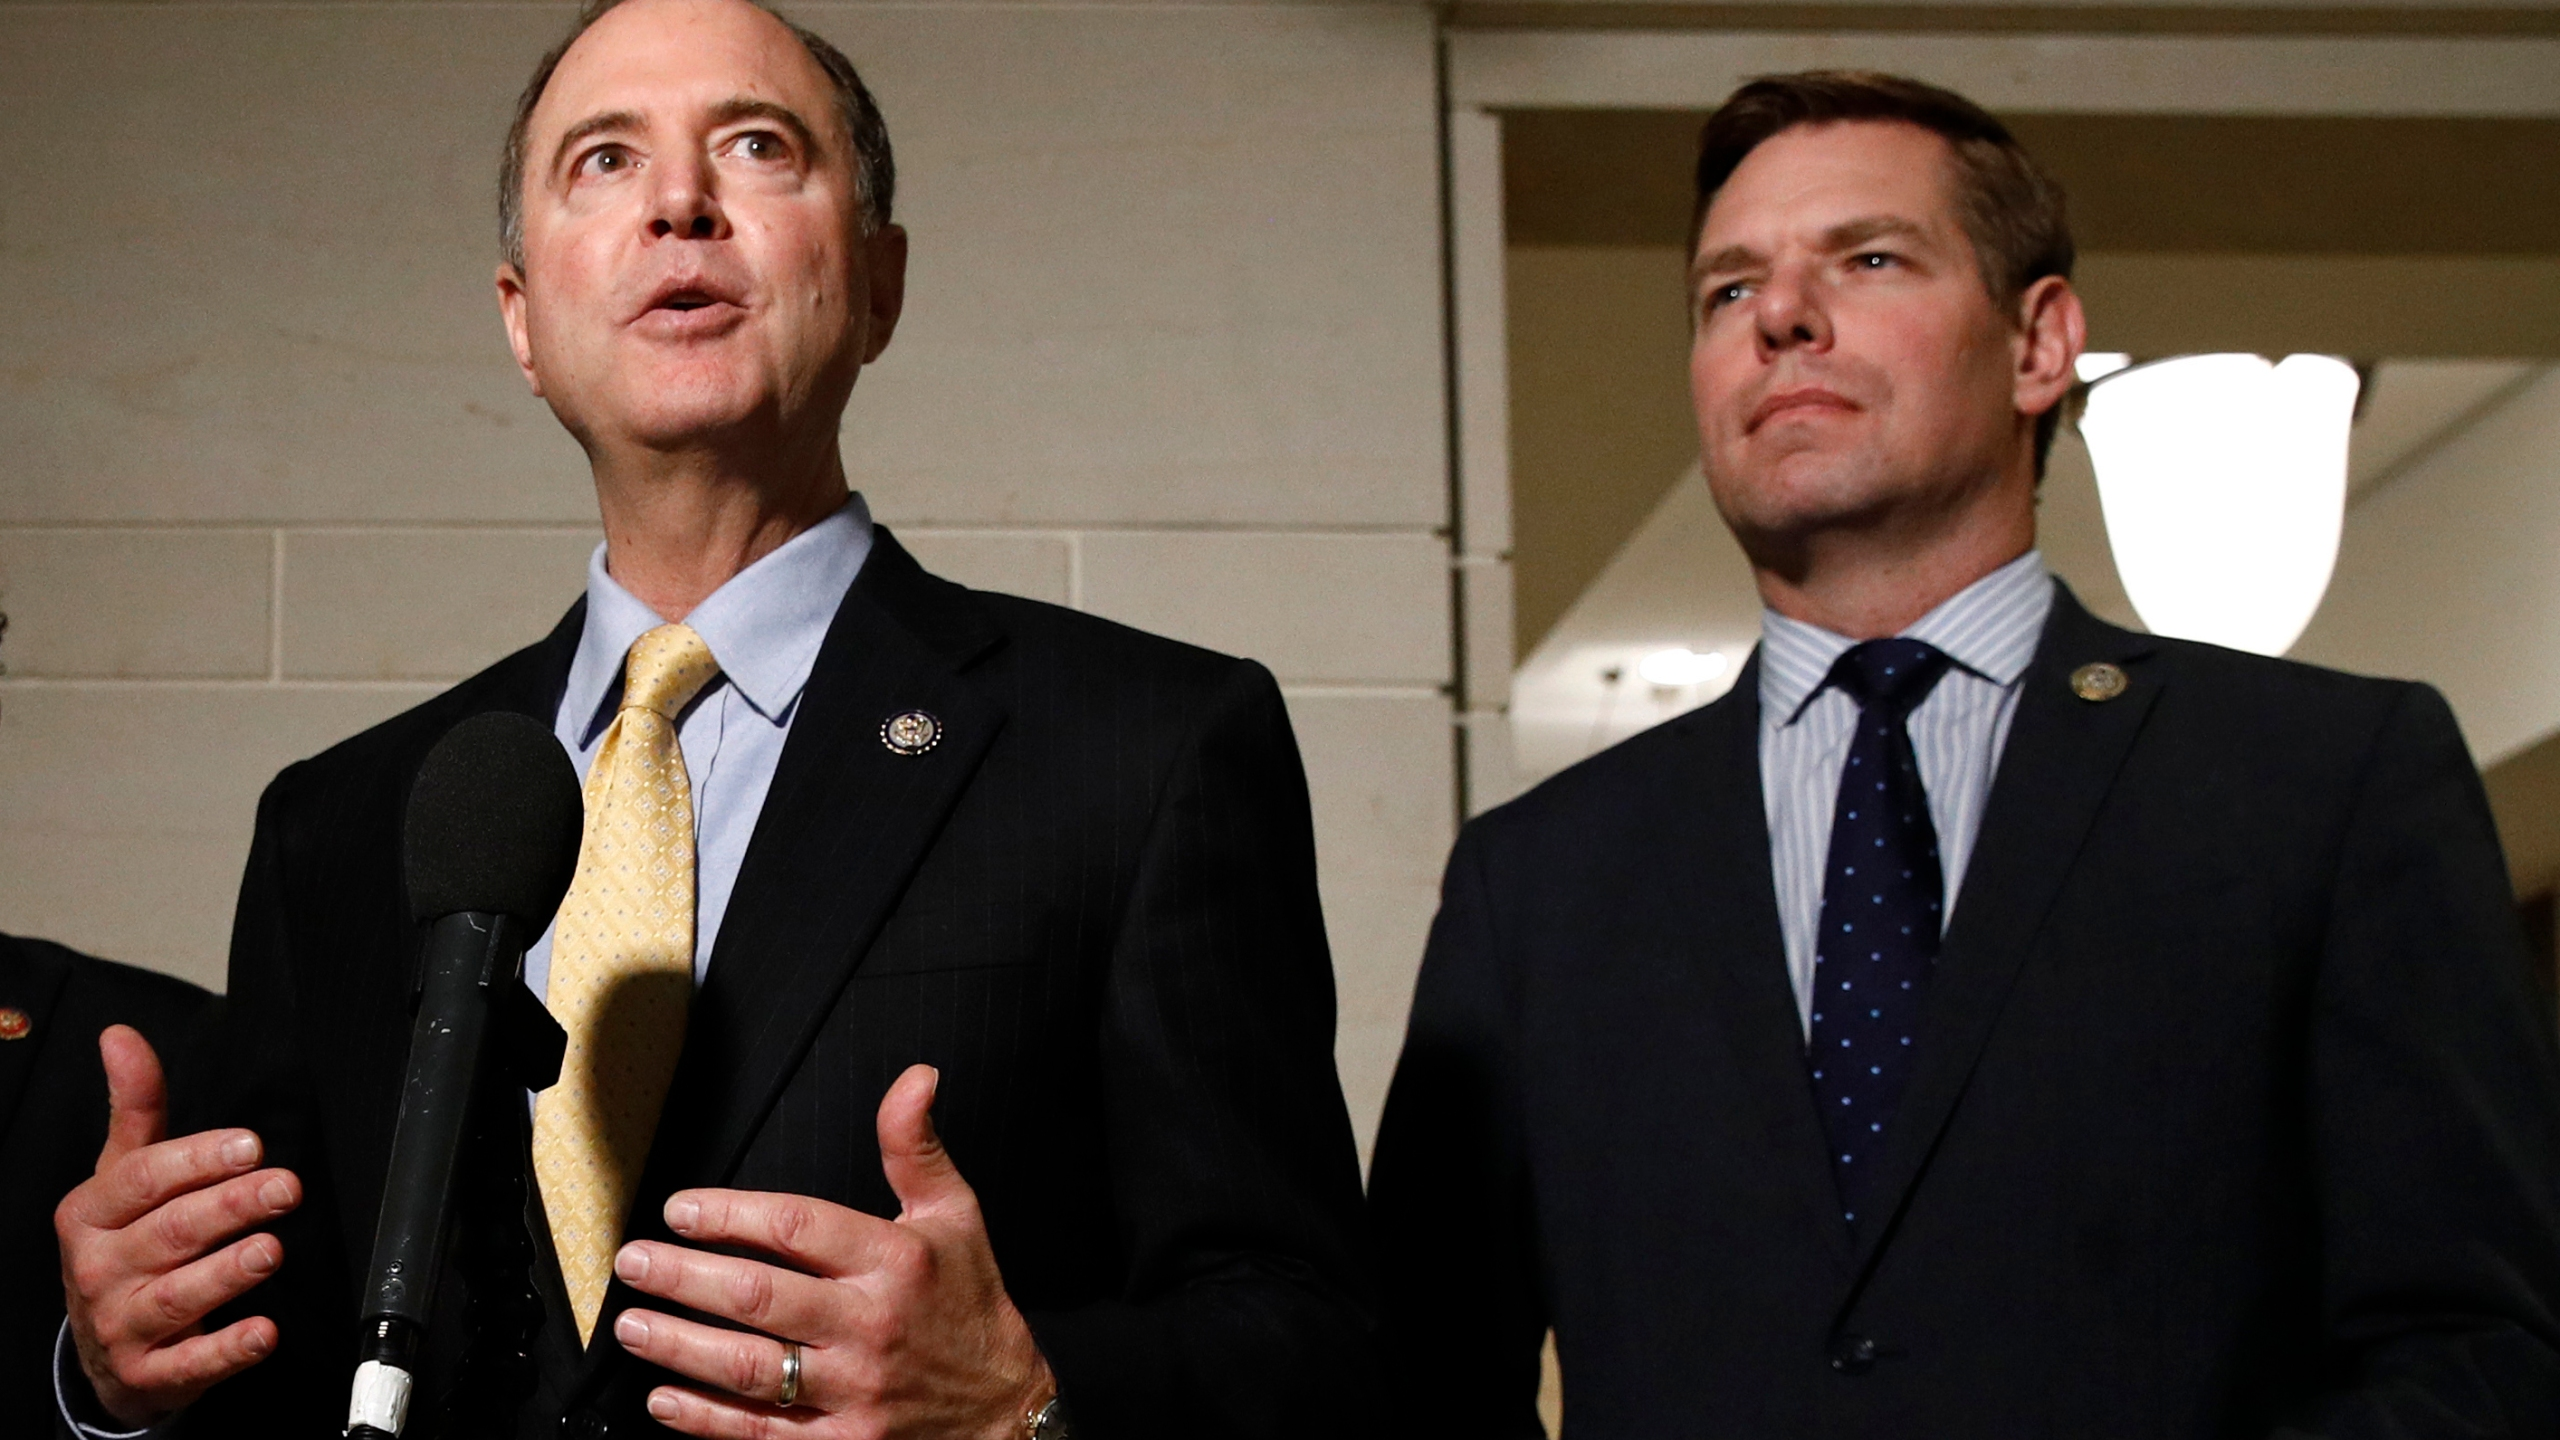 In this May 28, 2019 file photo, Rep. Adam Schiff, D-Calif., left, and Rep. Eric Swalwell, D-Calif., speak with members of the media on Capitol Hill. (Patrick Semansky/Associated Press)